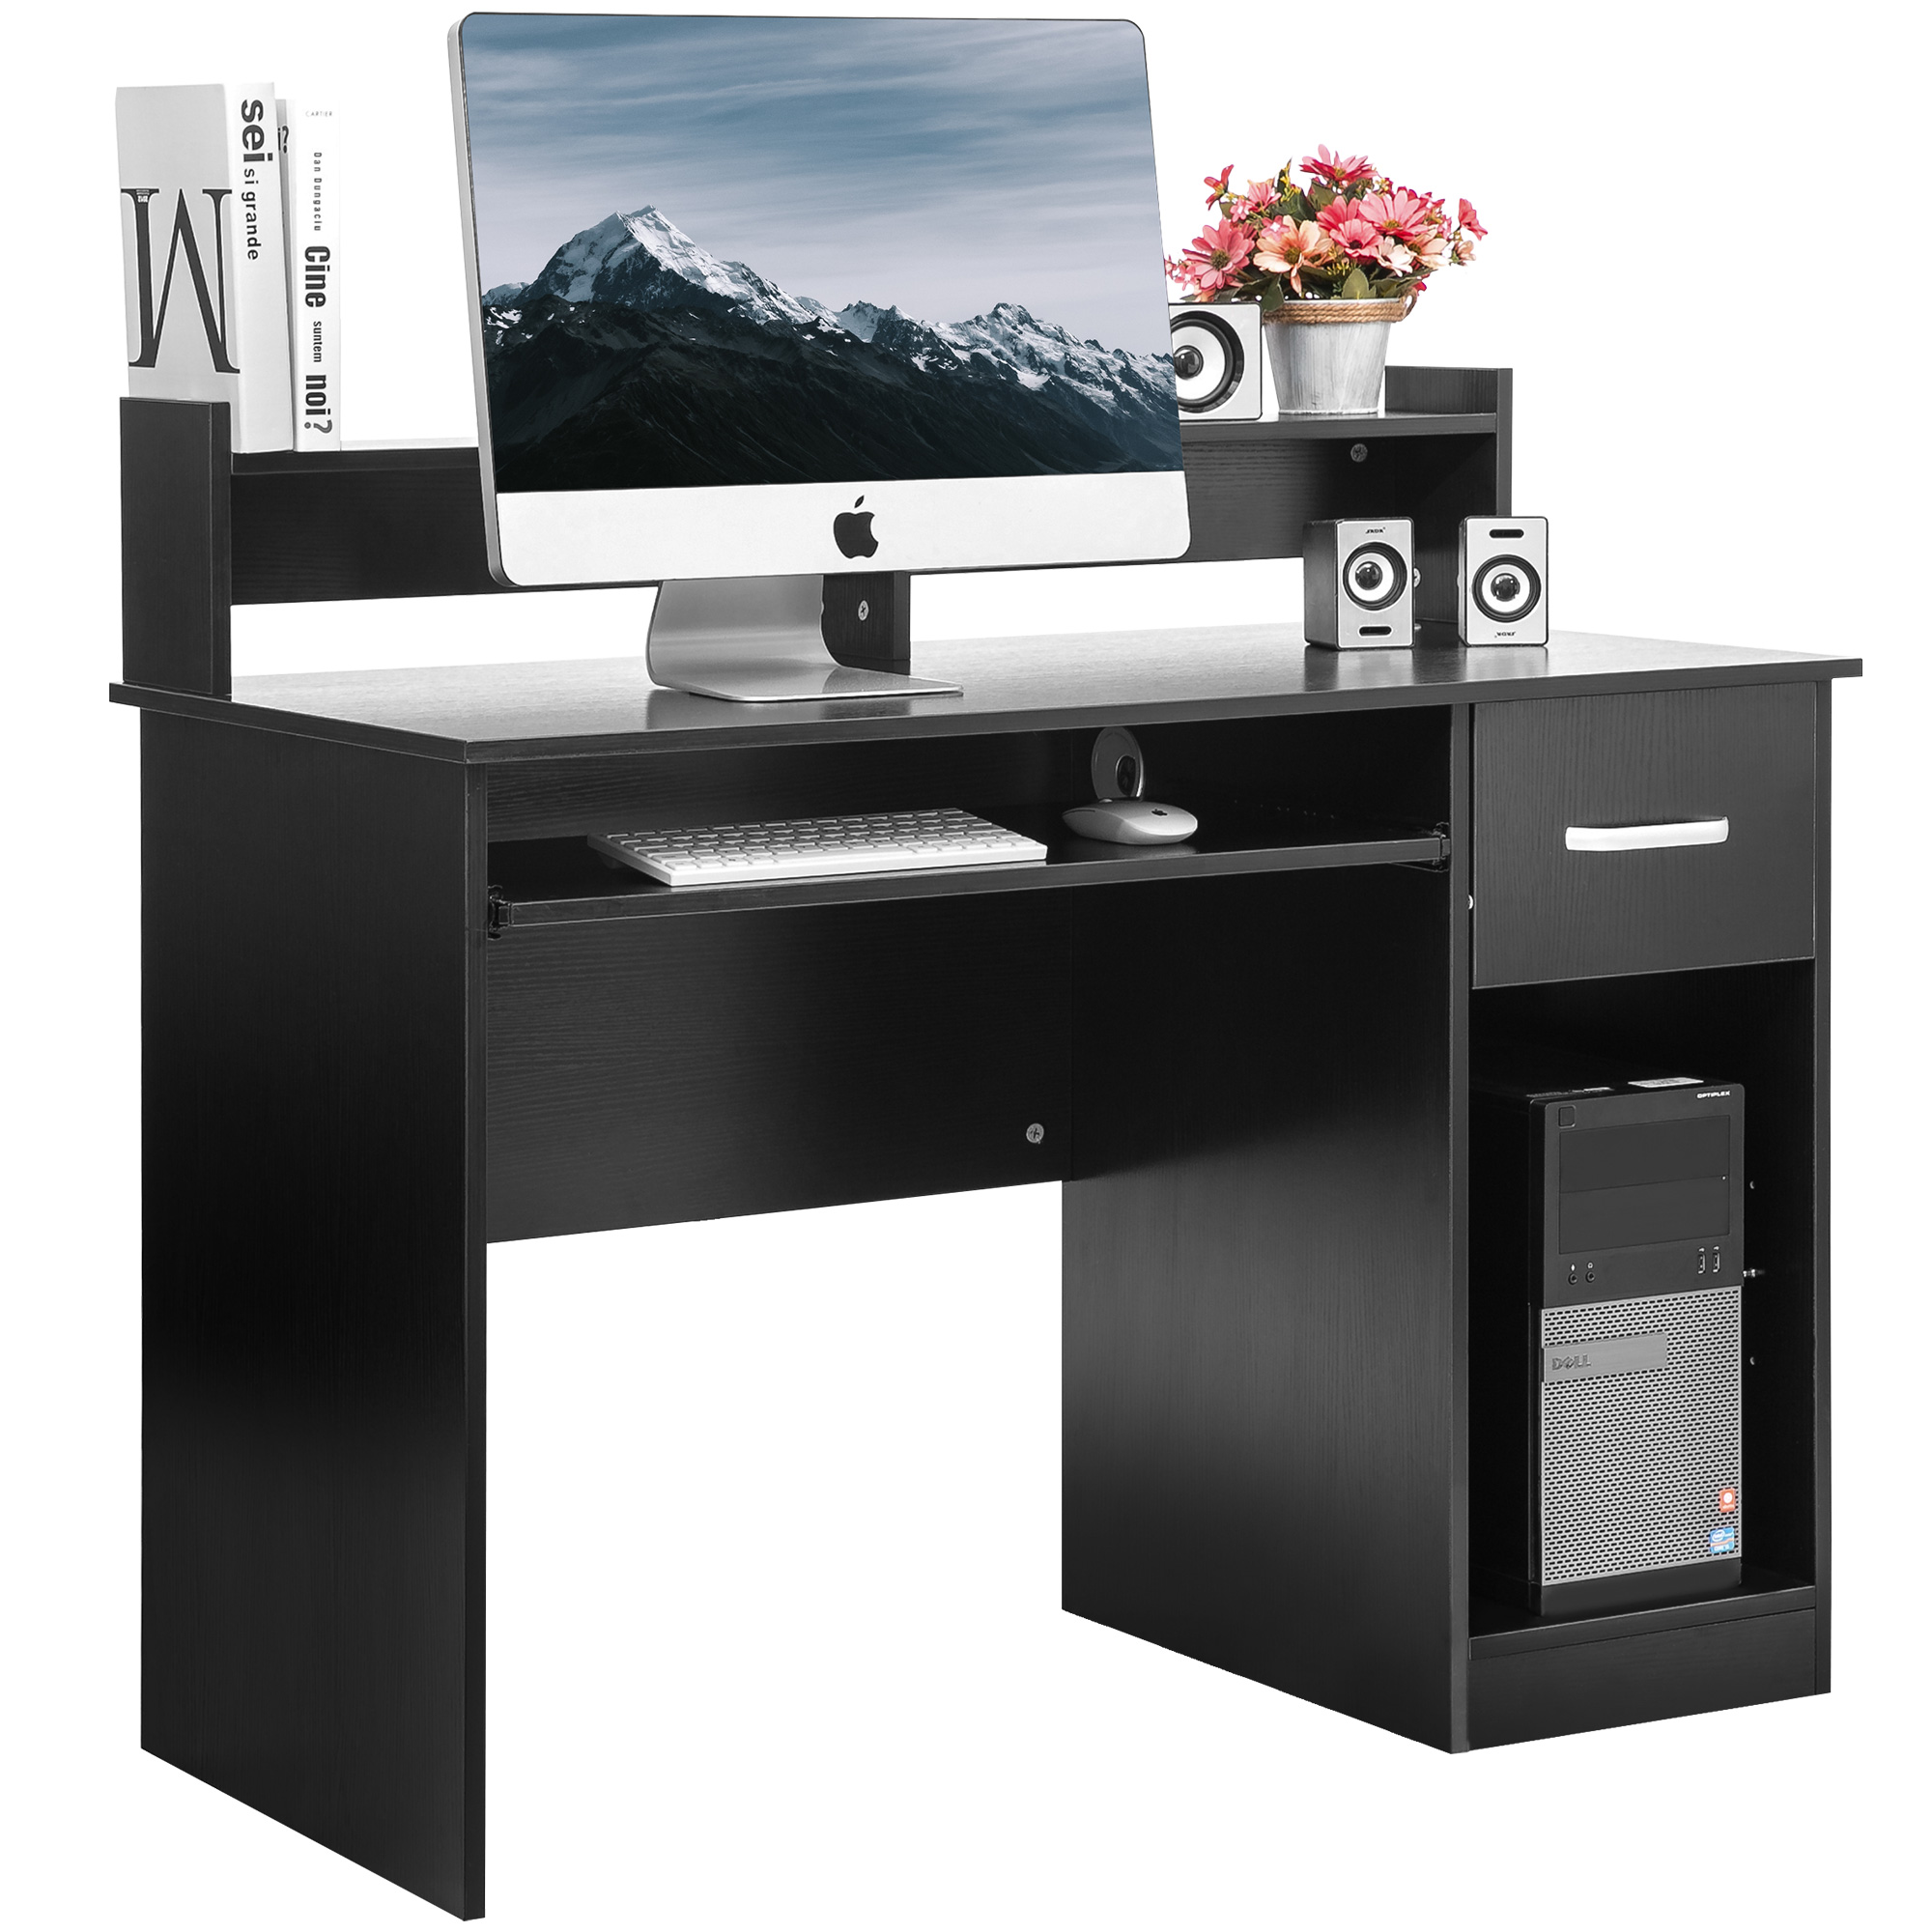 Attirant Merax Computer Desk Office Home Furniture Writing Desk With Hutch And  Keyboard Tray, Multiple Colors